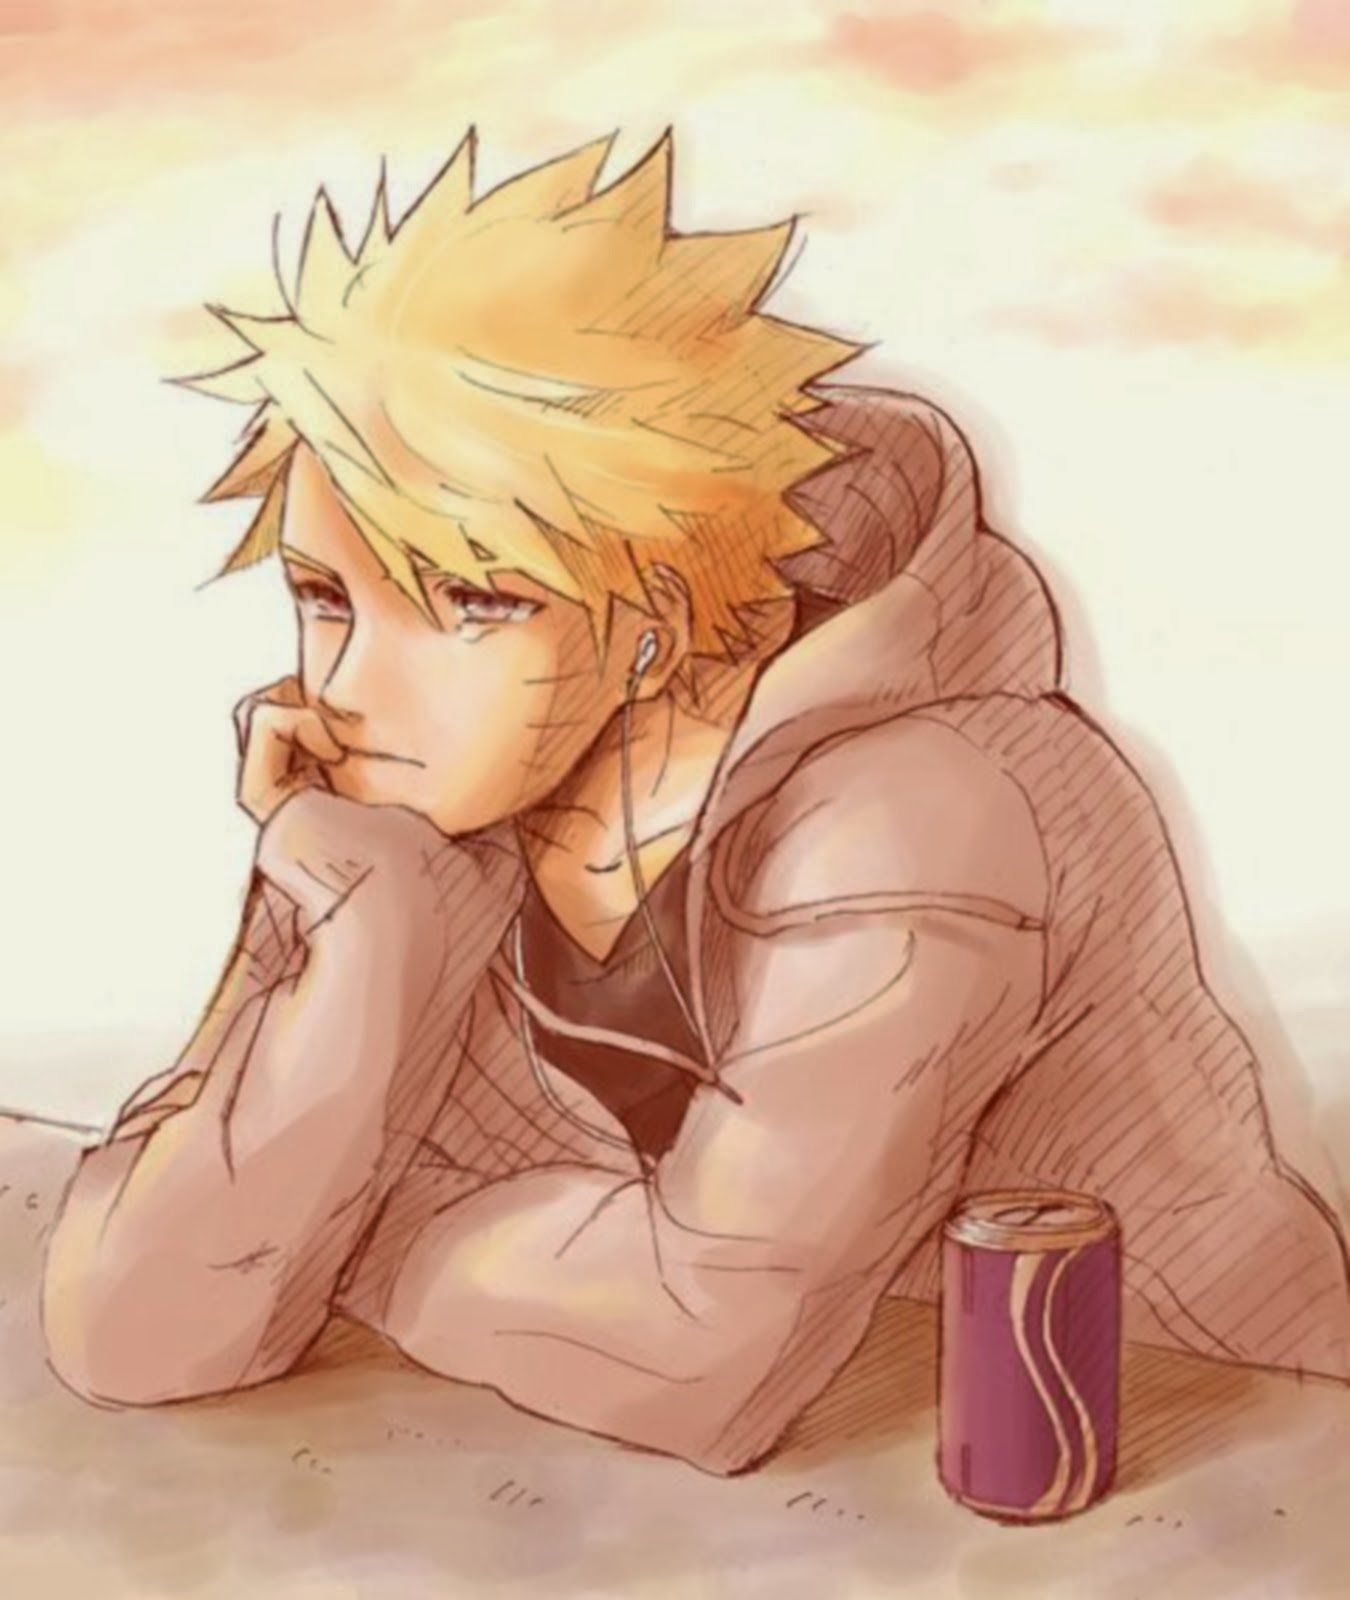 """""""Knowing what it feels to be in pain, is exactly why we try to be kinds to others."""" —Jiraiya"""